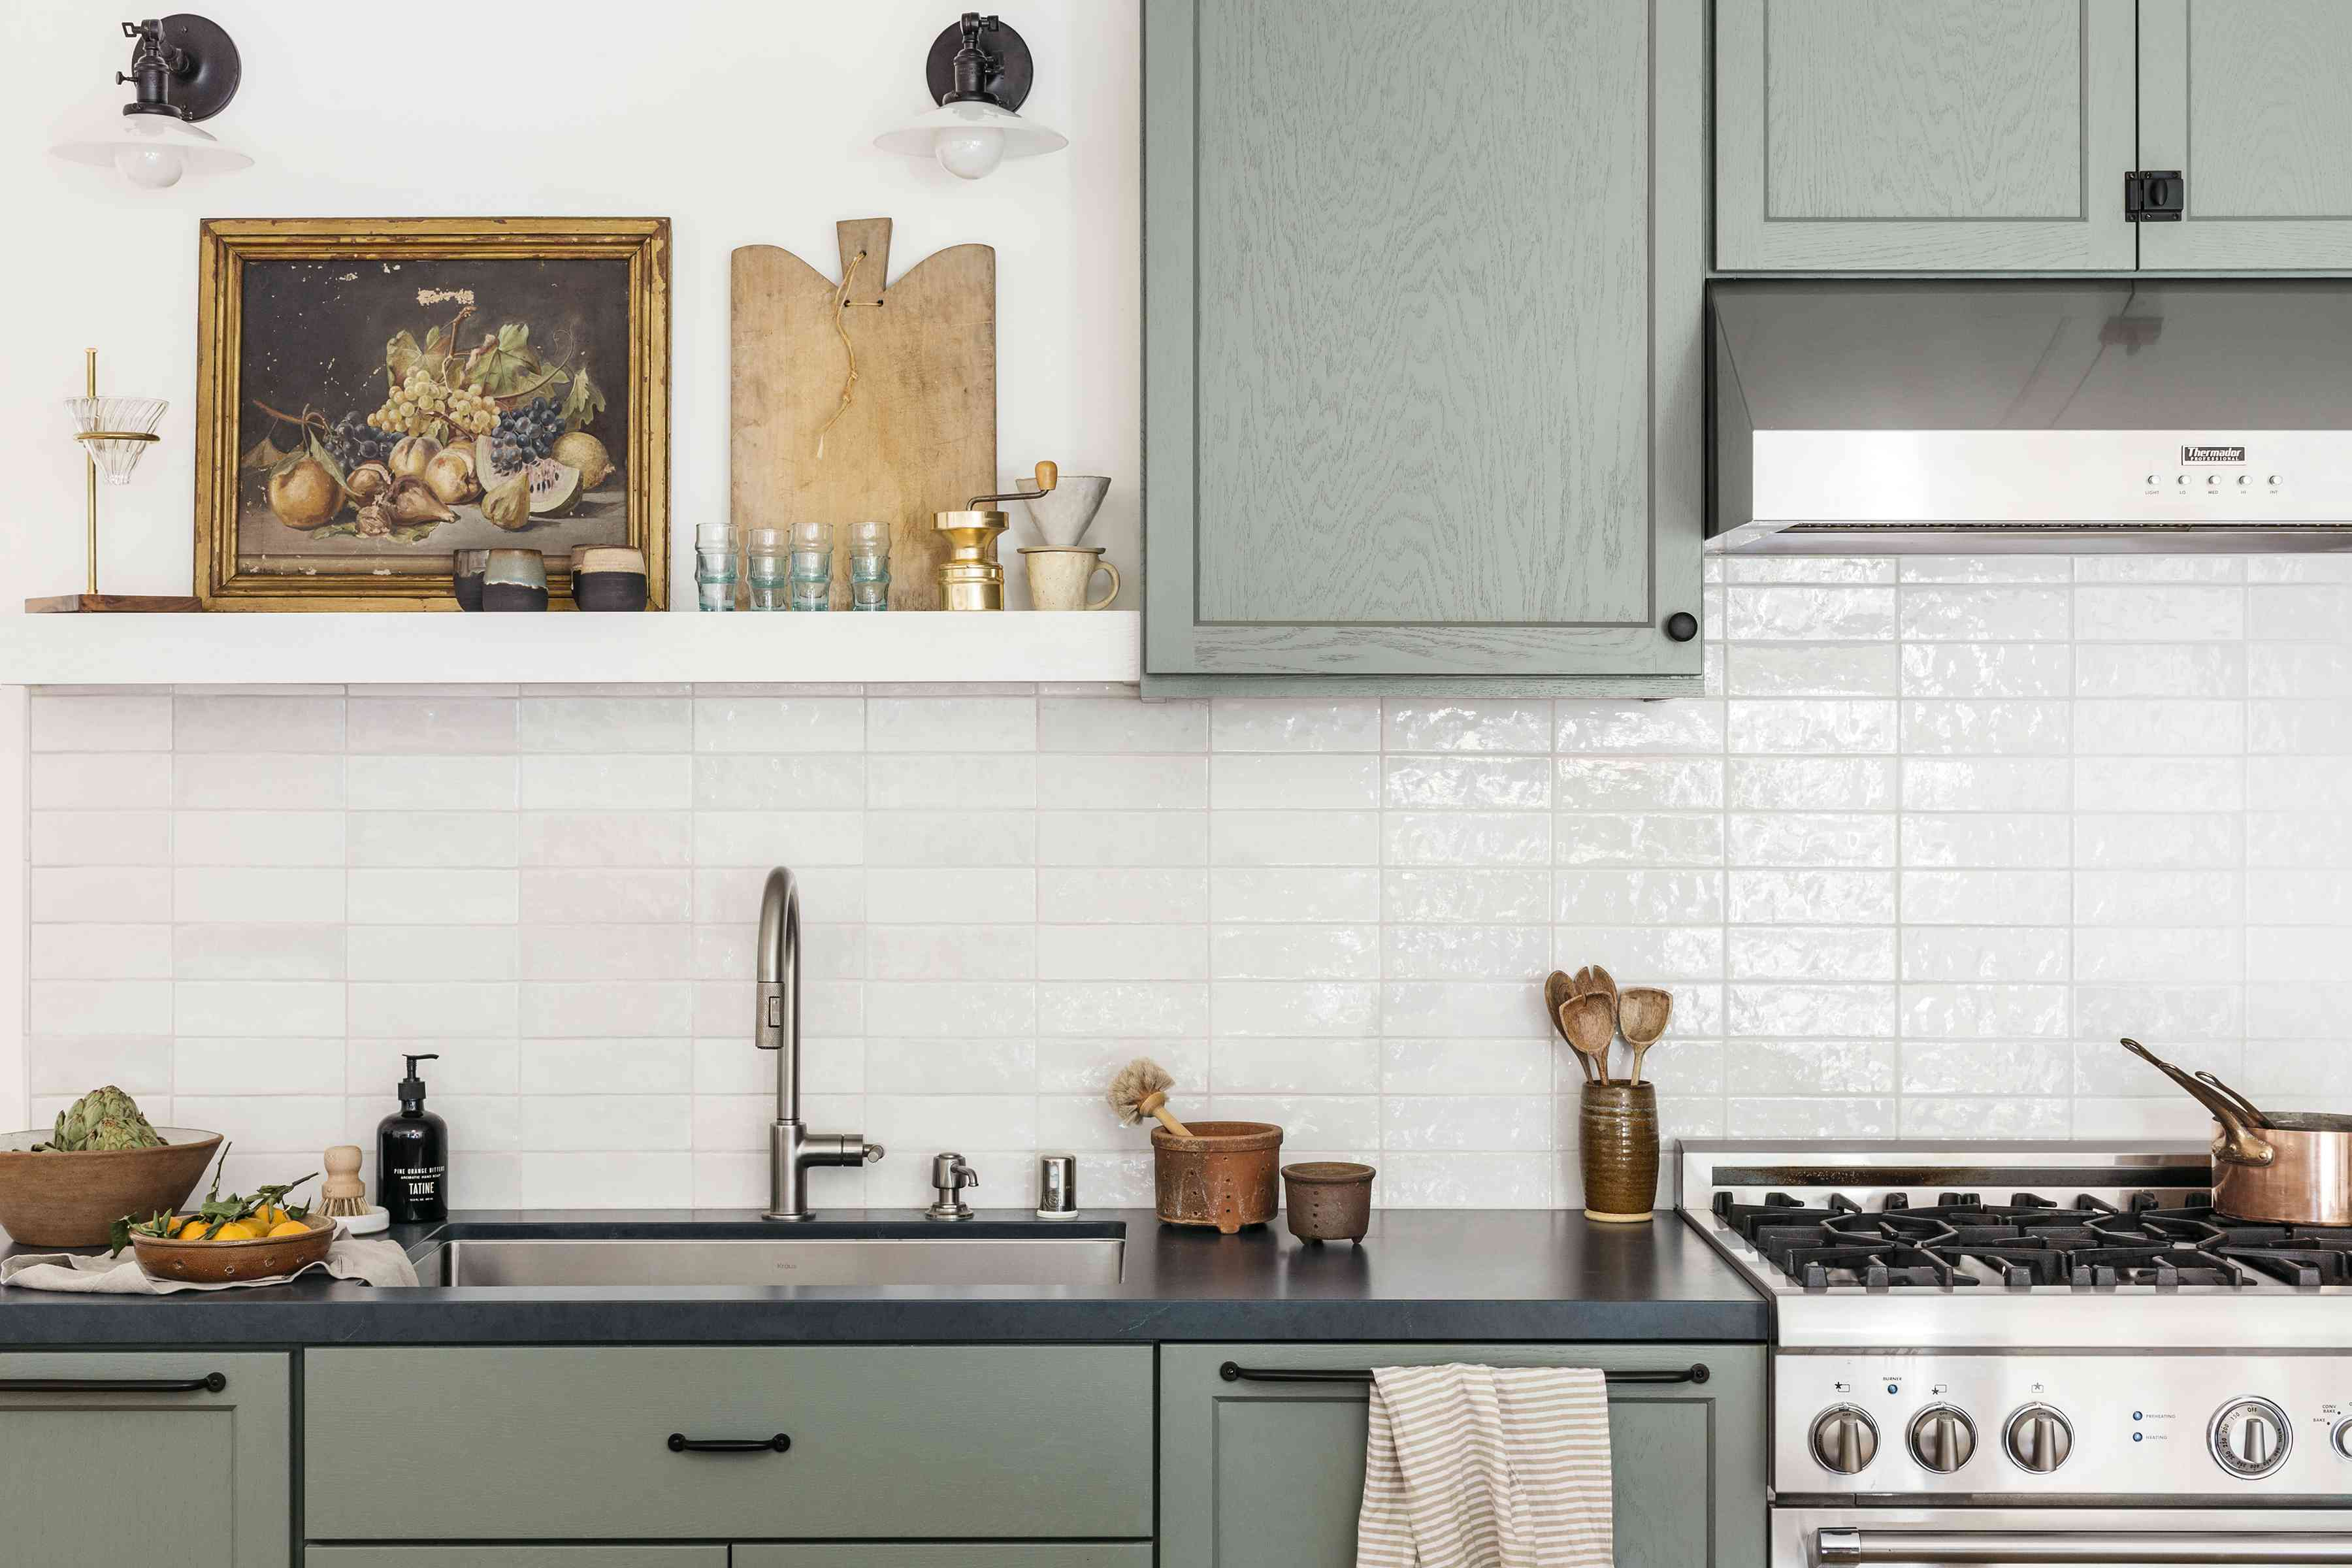 Brett Foken home tour - close-up of kitchen island with art, utensils and collectables